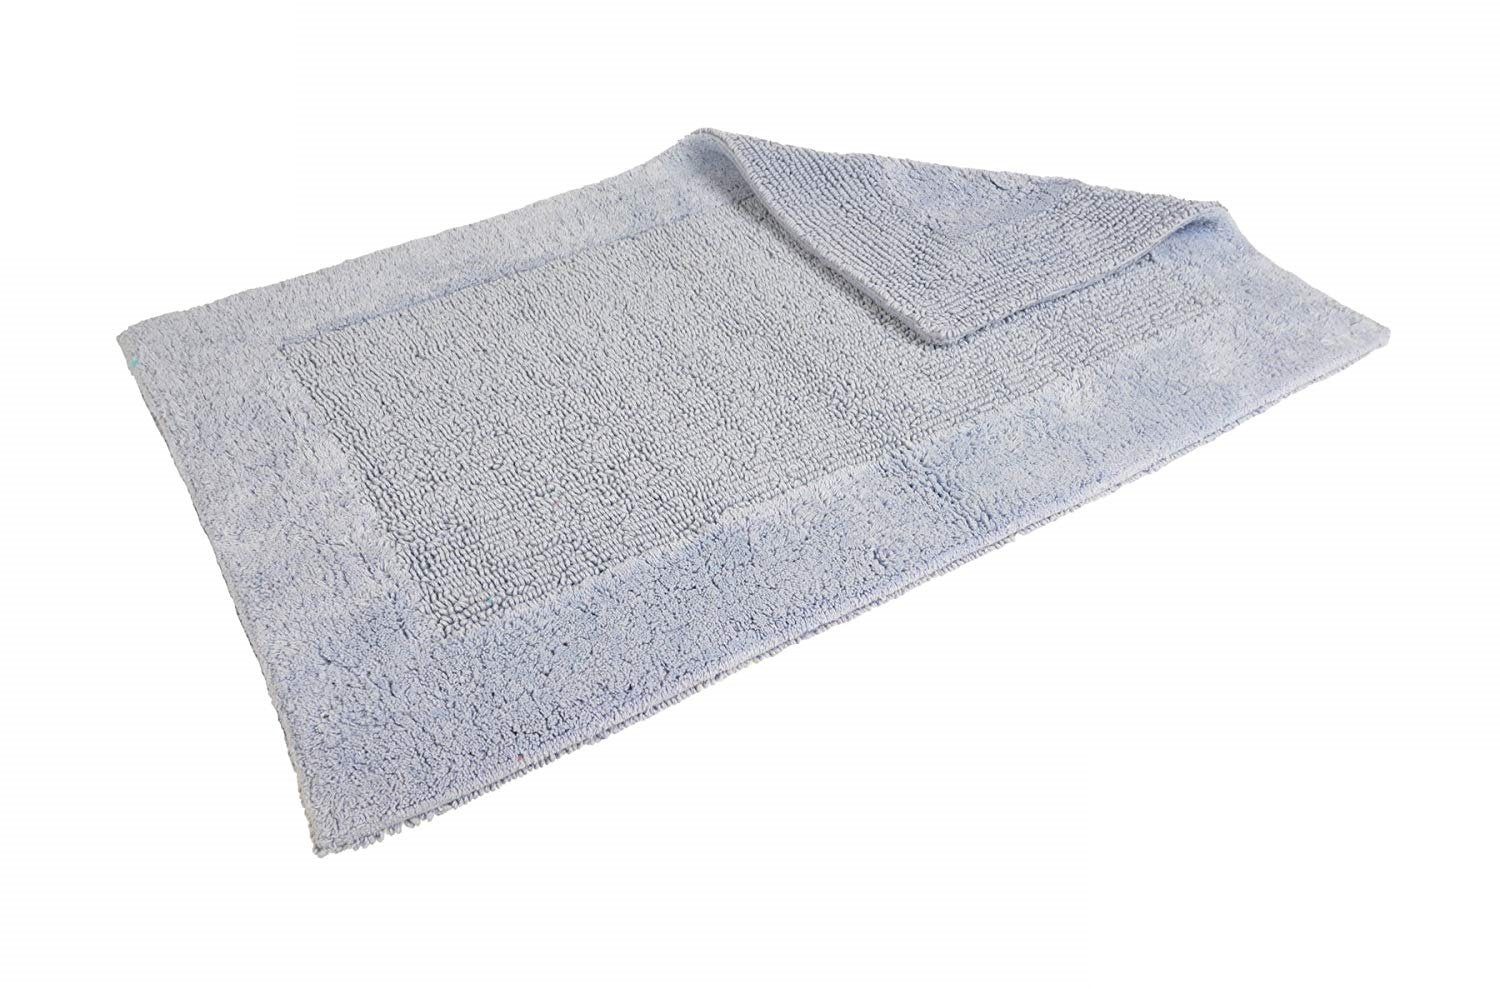 Allure Bath Fashions Luxury Supersoft Egyptian Cotton Towels 2 x Absorbent and Quick Dry Bath Towels Set 70 x 120cm 500gsm (Blue, 2x Bath Towels)